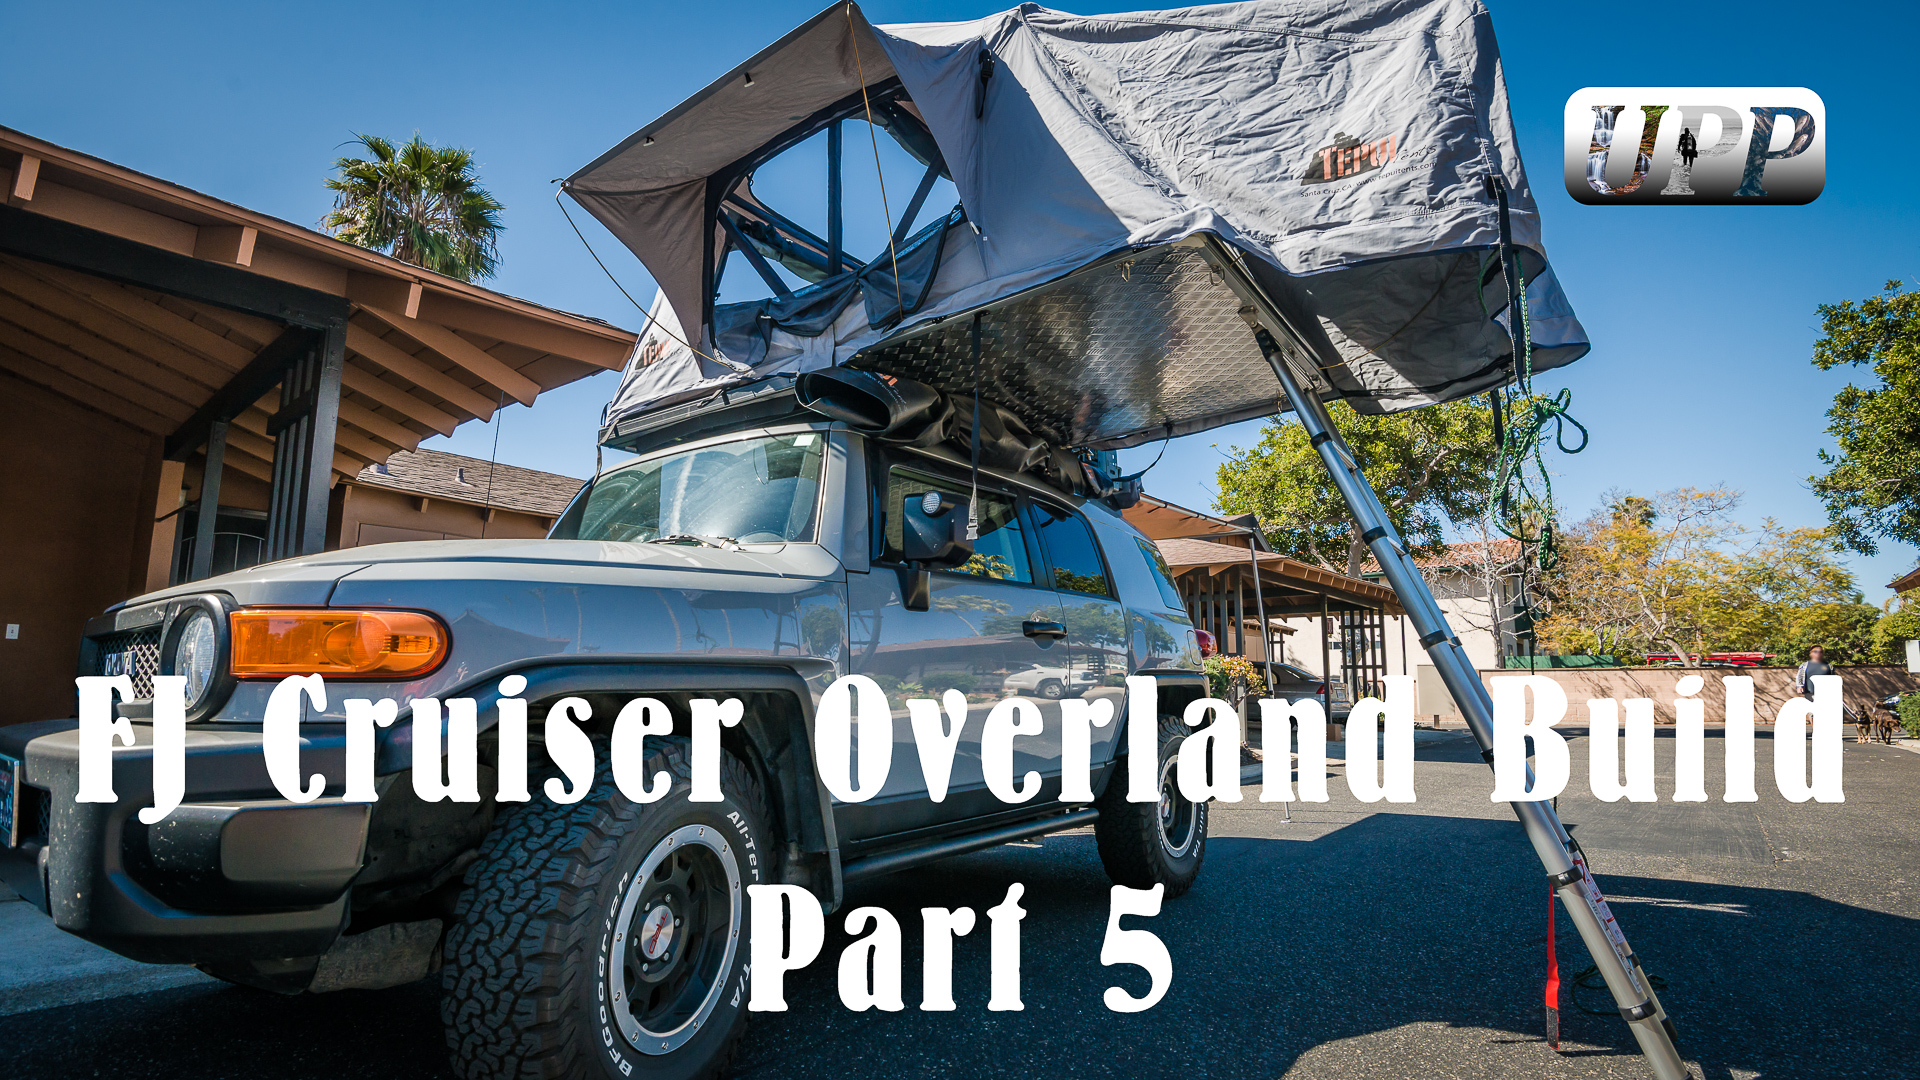 FJ Cruiser Overland Build Part 5 – Accessories